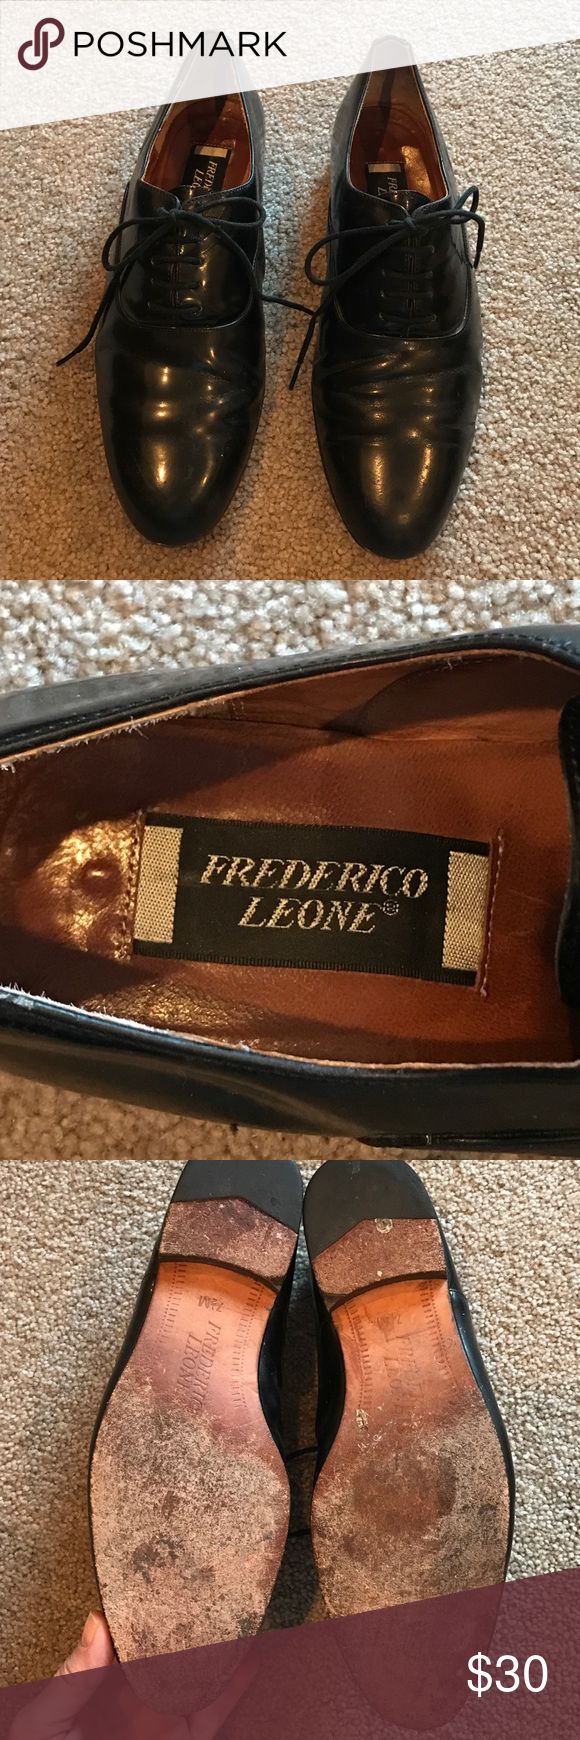 Tuxedo shoes men's size 7.5 by Frederico Leone Black shiny tuxedo shoes size 7 ½ medium. Frederico Leone Shoes